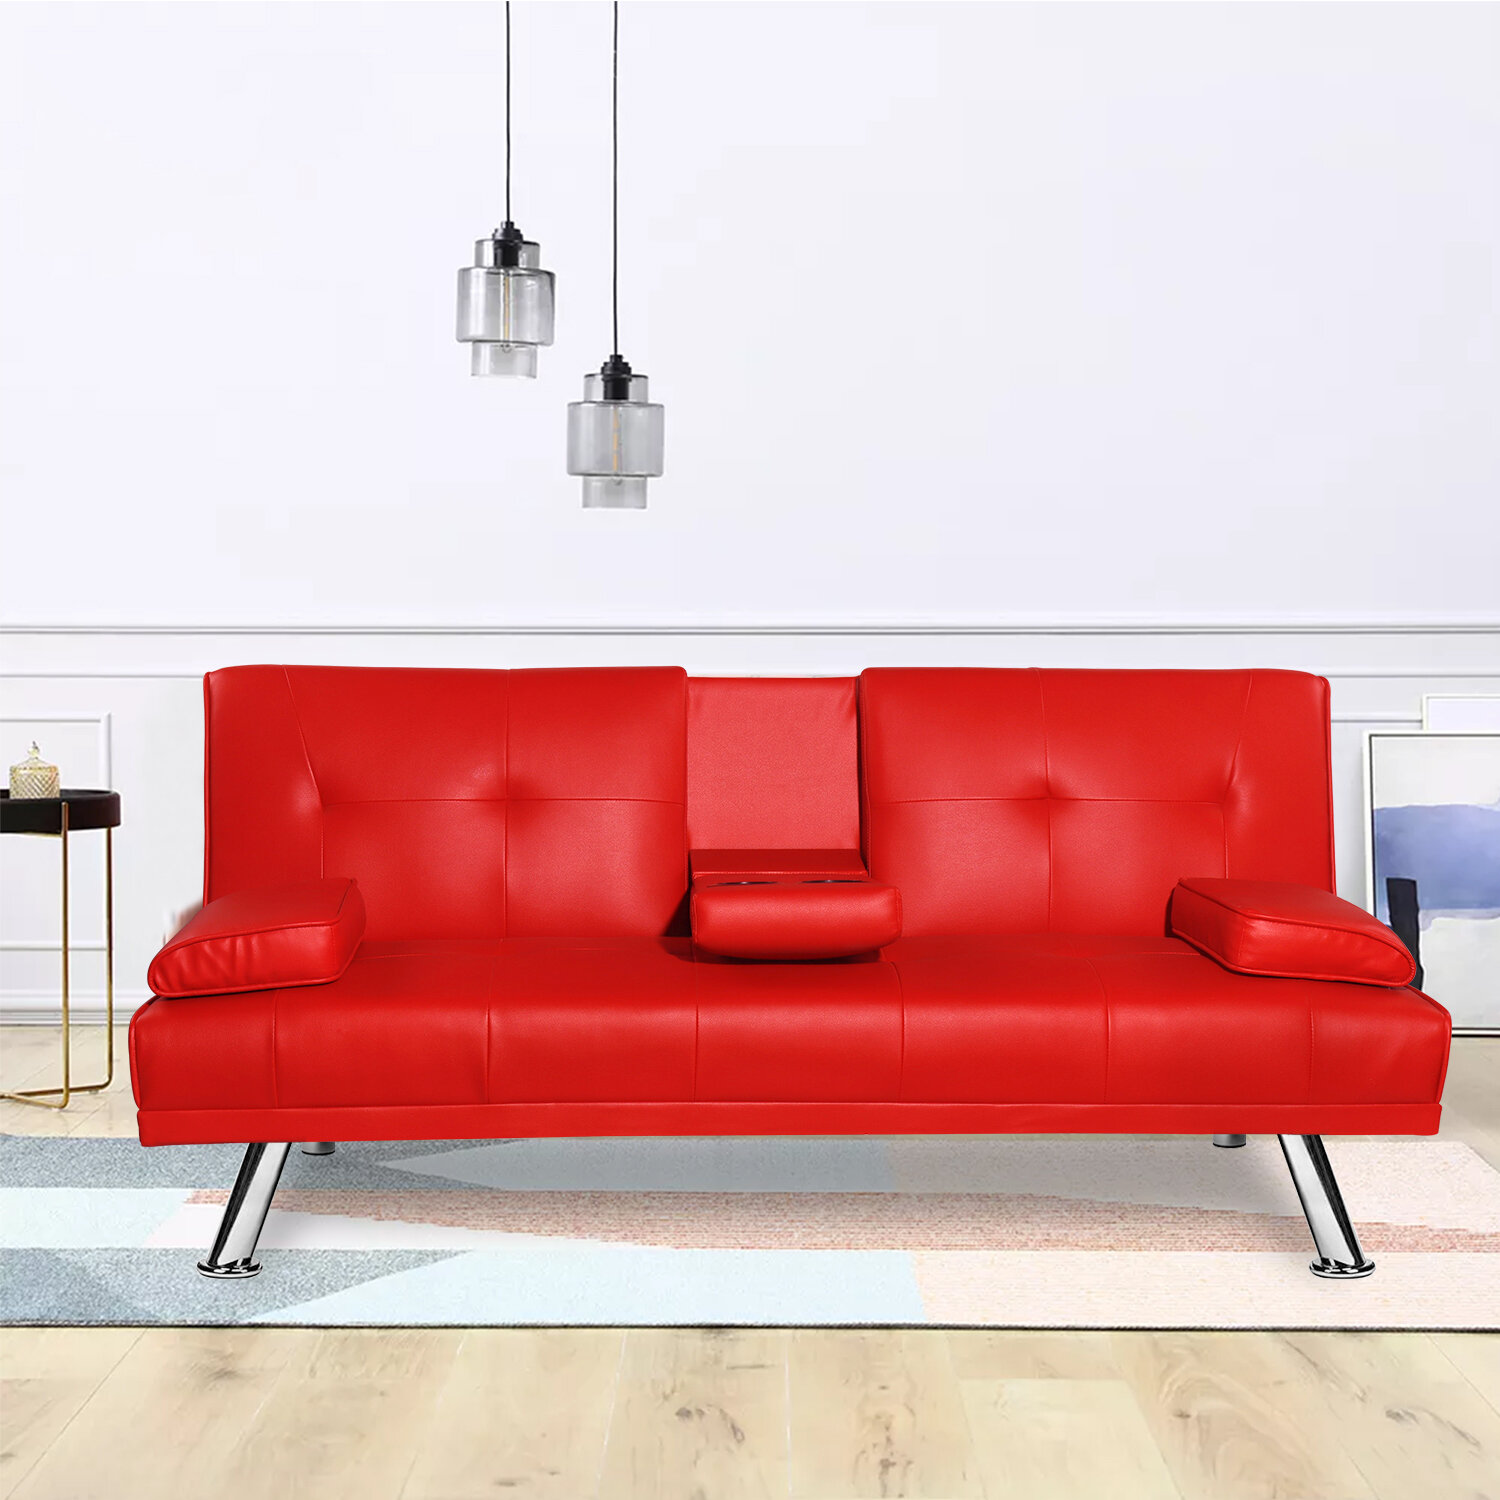 Ebern Designs Convertible Futon Sofa Bed With Armrest Recliner Couch Furniture Red Wayfair Ca